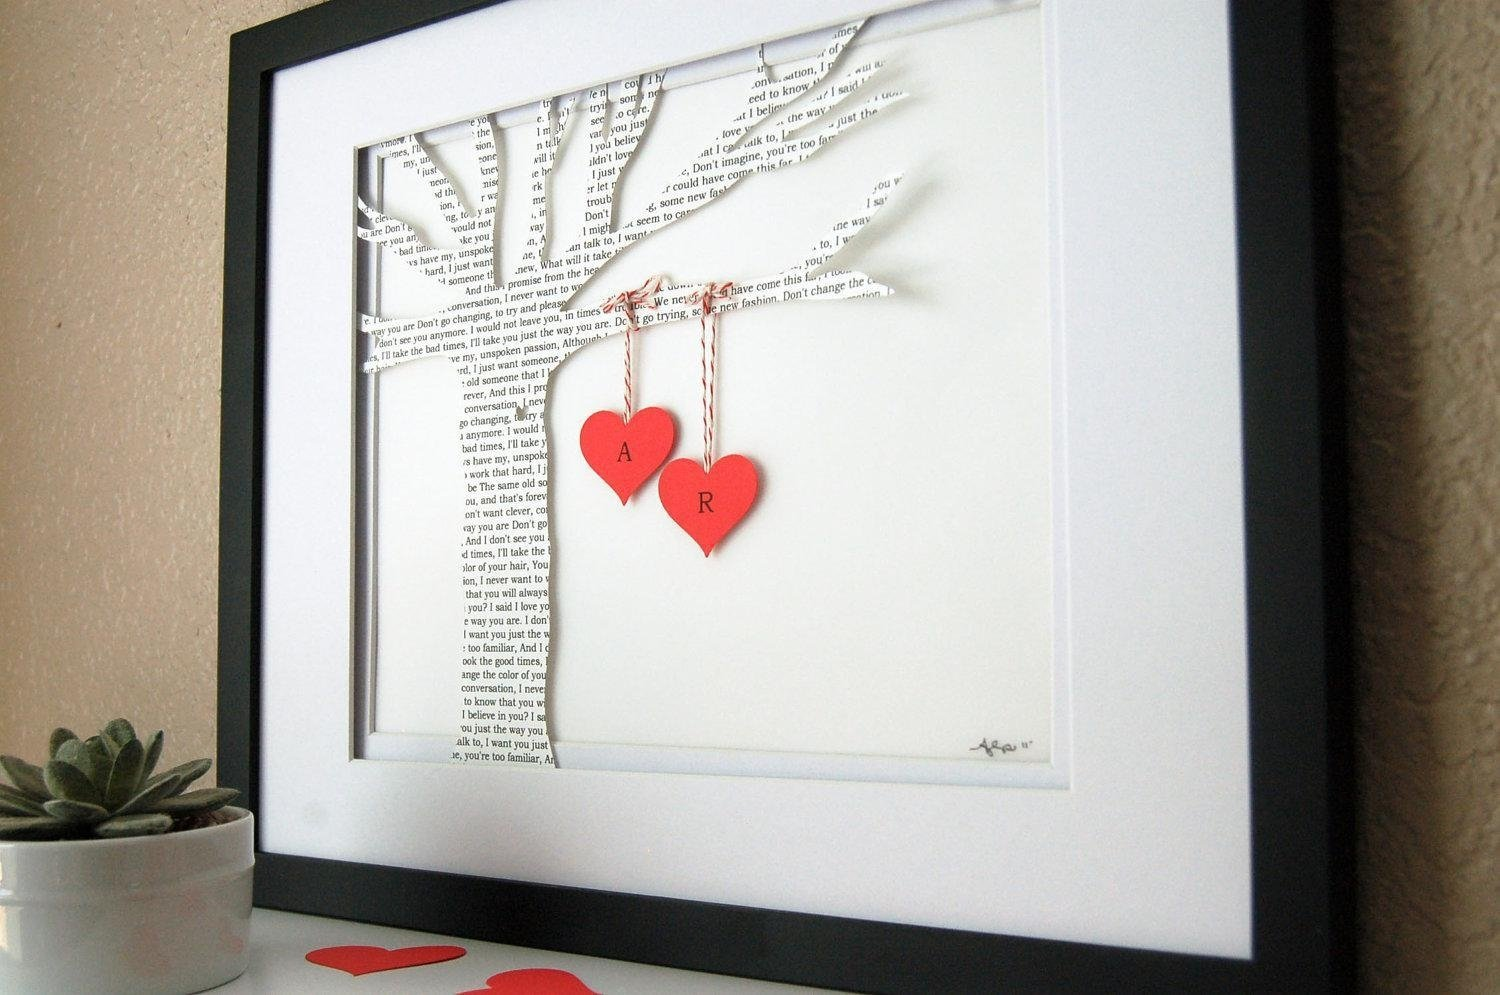 10 Fashionable Second Year Anniversary Gift Ideas unusual creative anniversary gift ideas for her 15 2021